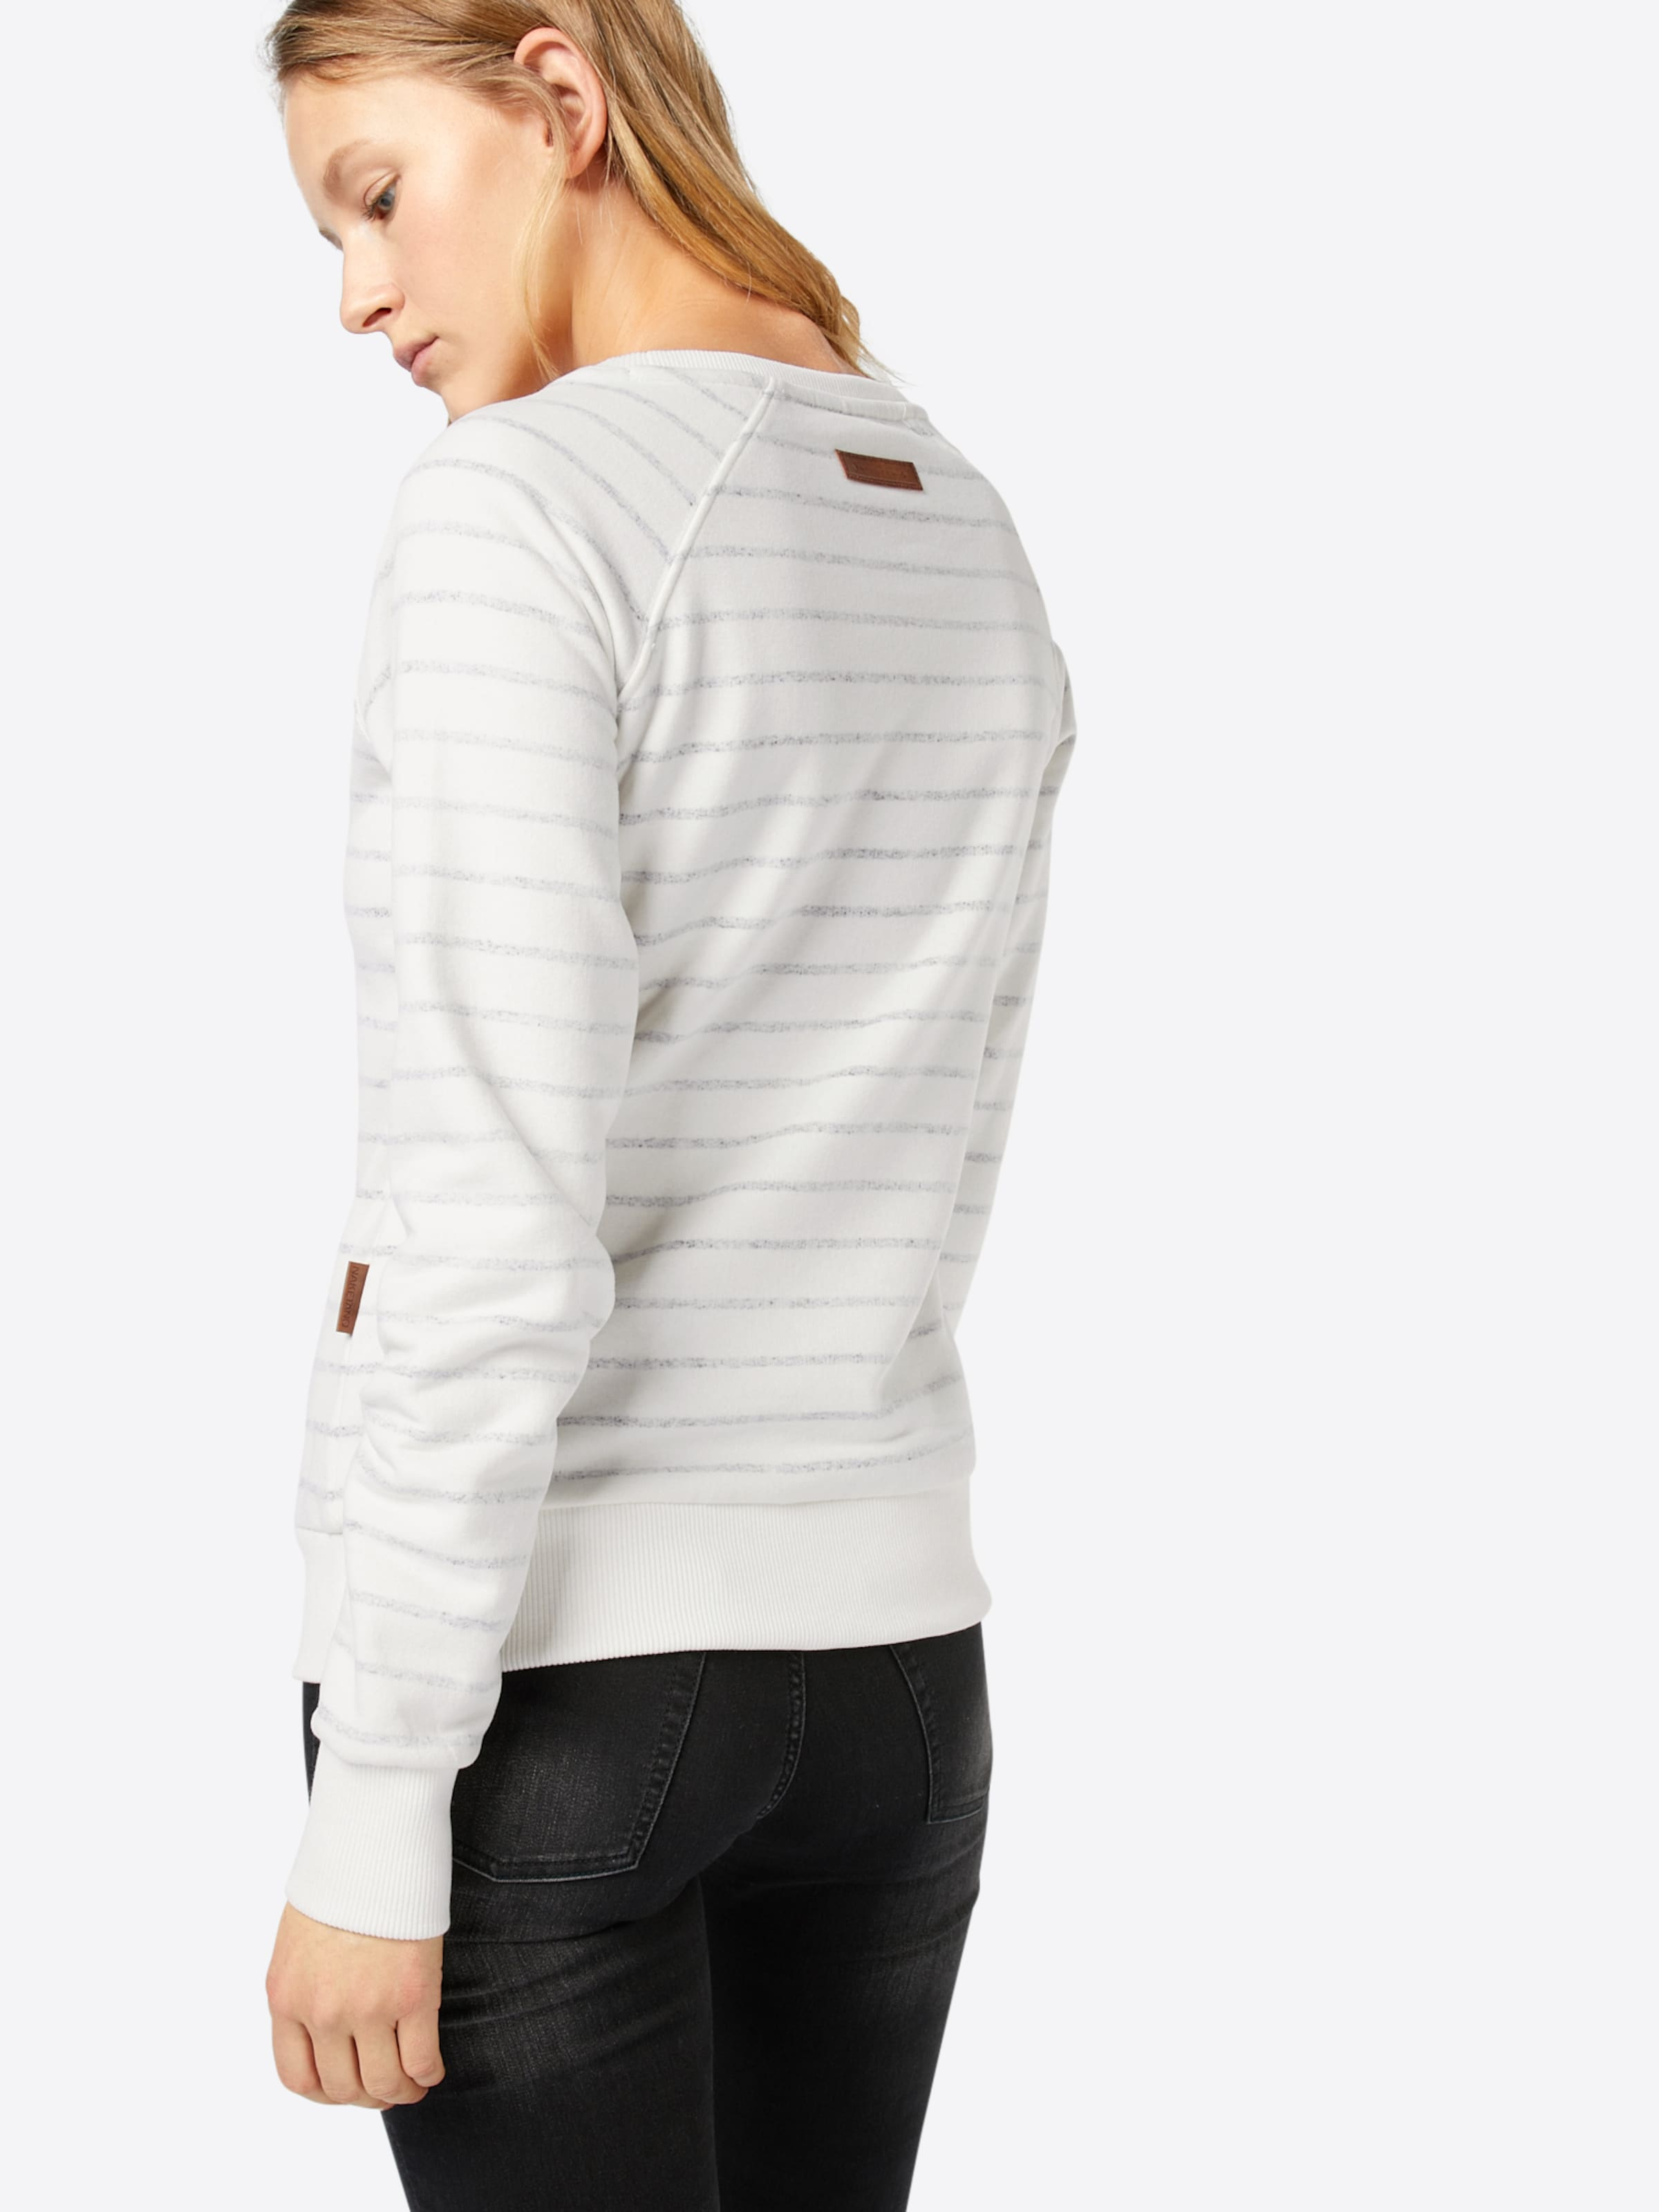 shirt Naketano Sweat En BeigeBleu Pastel 76gybf